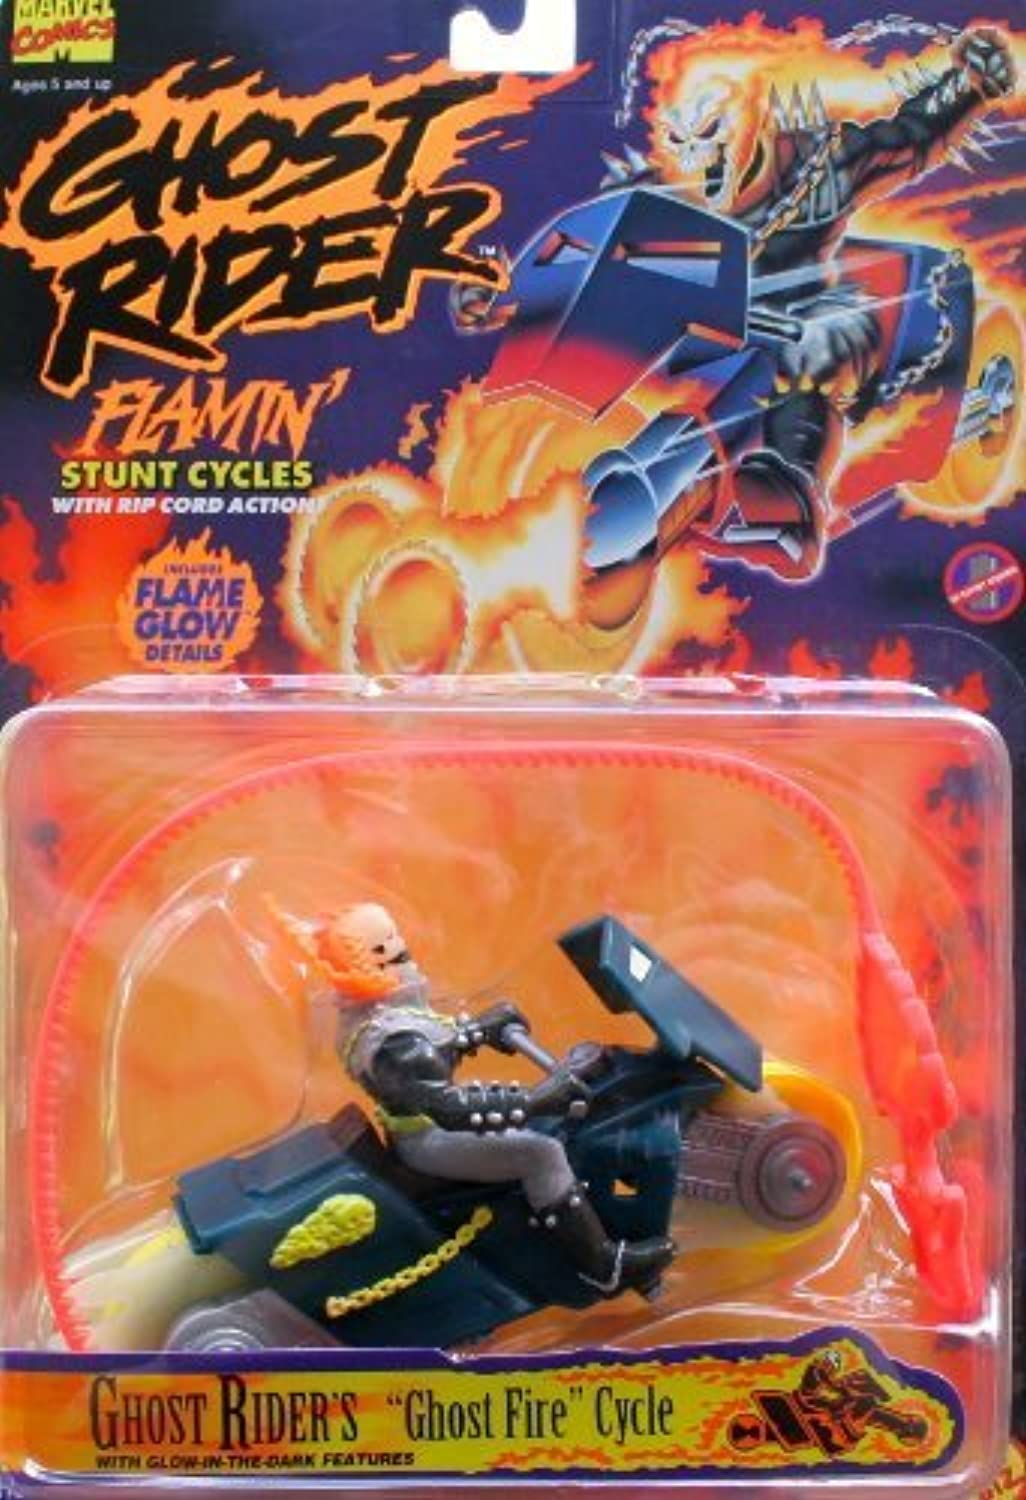 Ghost Rider's Ghost Fire Cycle by Toy Biz